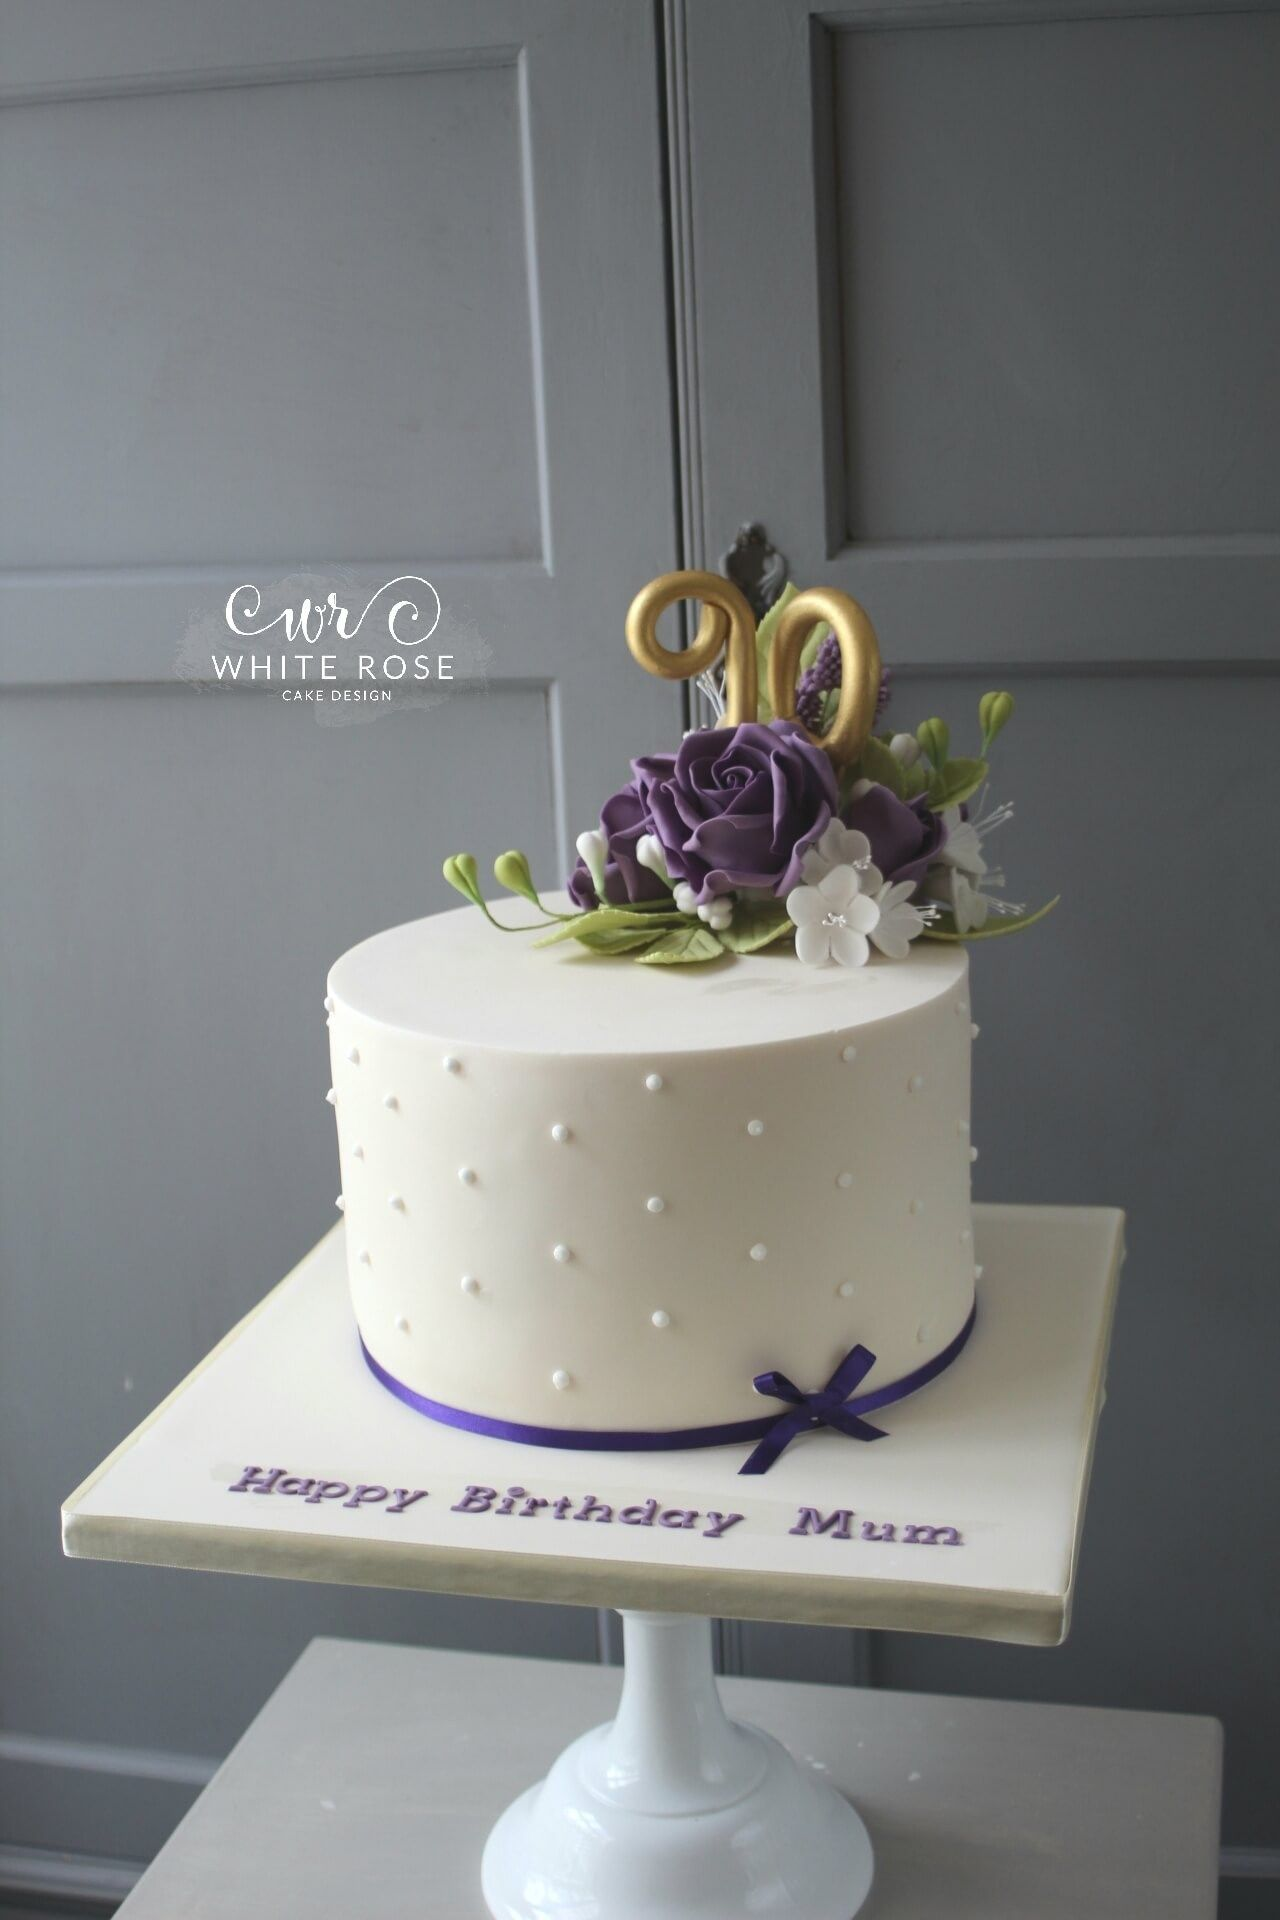 30 Exclusive Photo Of 90th Birthday Cakes With Images 90th Birthday Cakes Birthday Cake For Mom Rose Cake Design